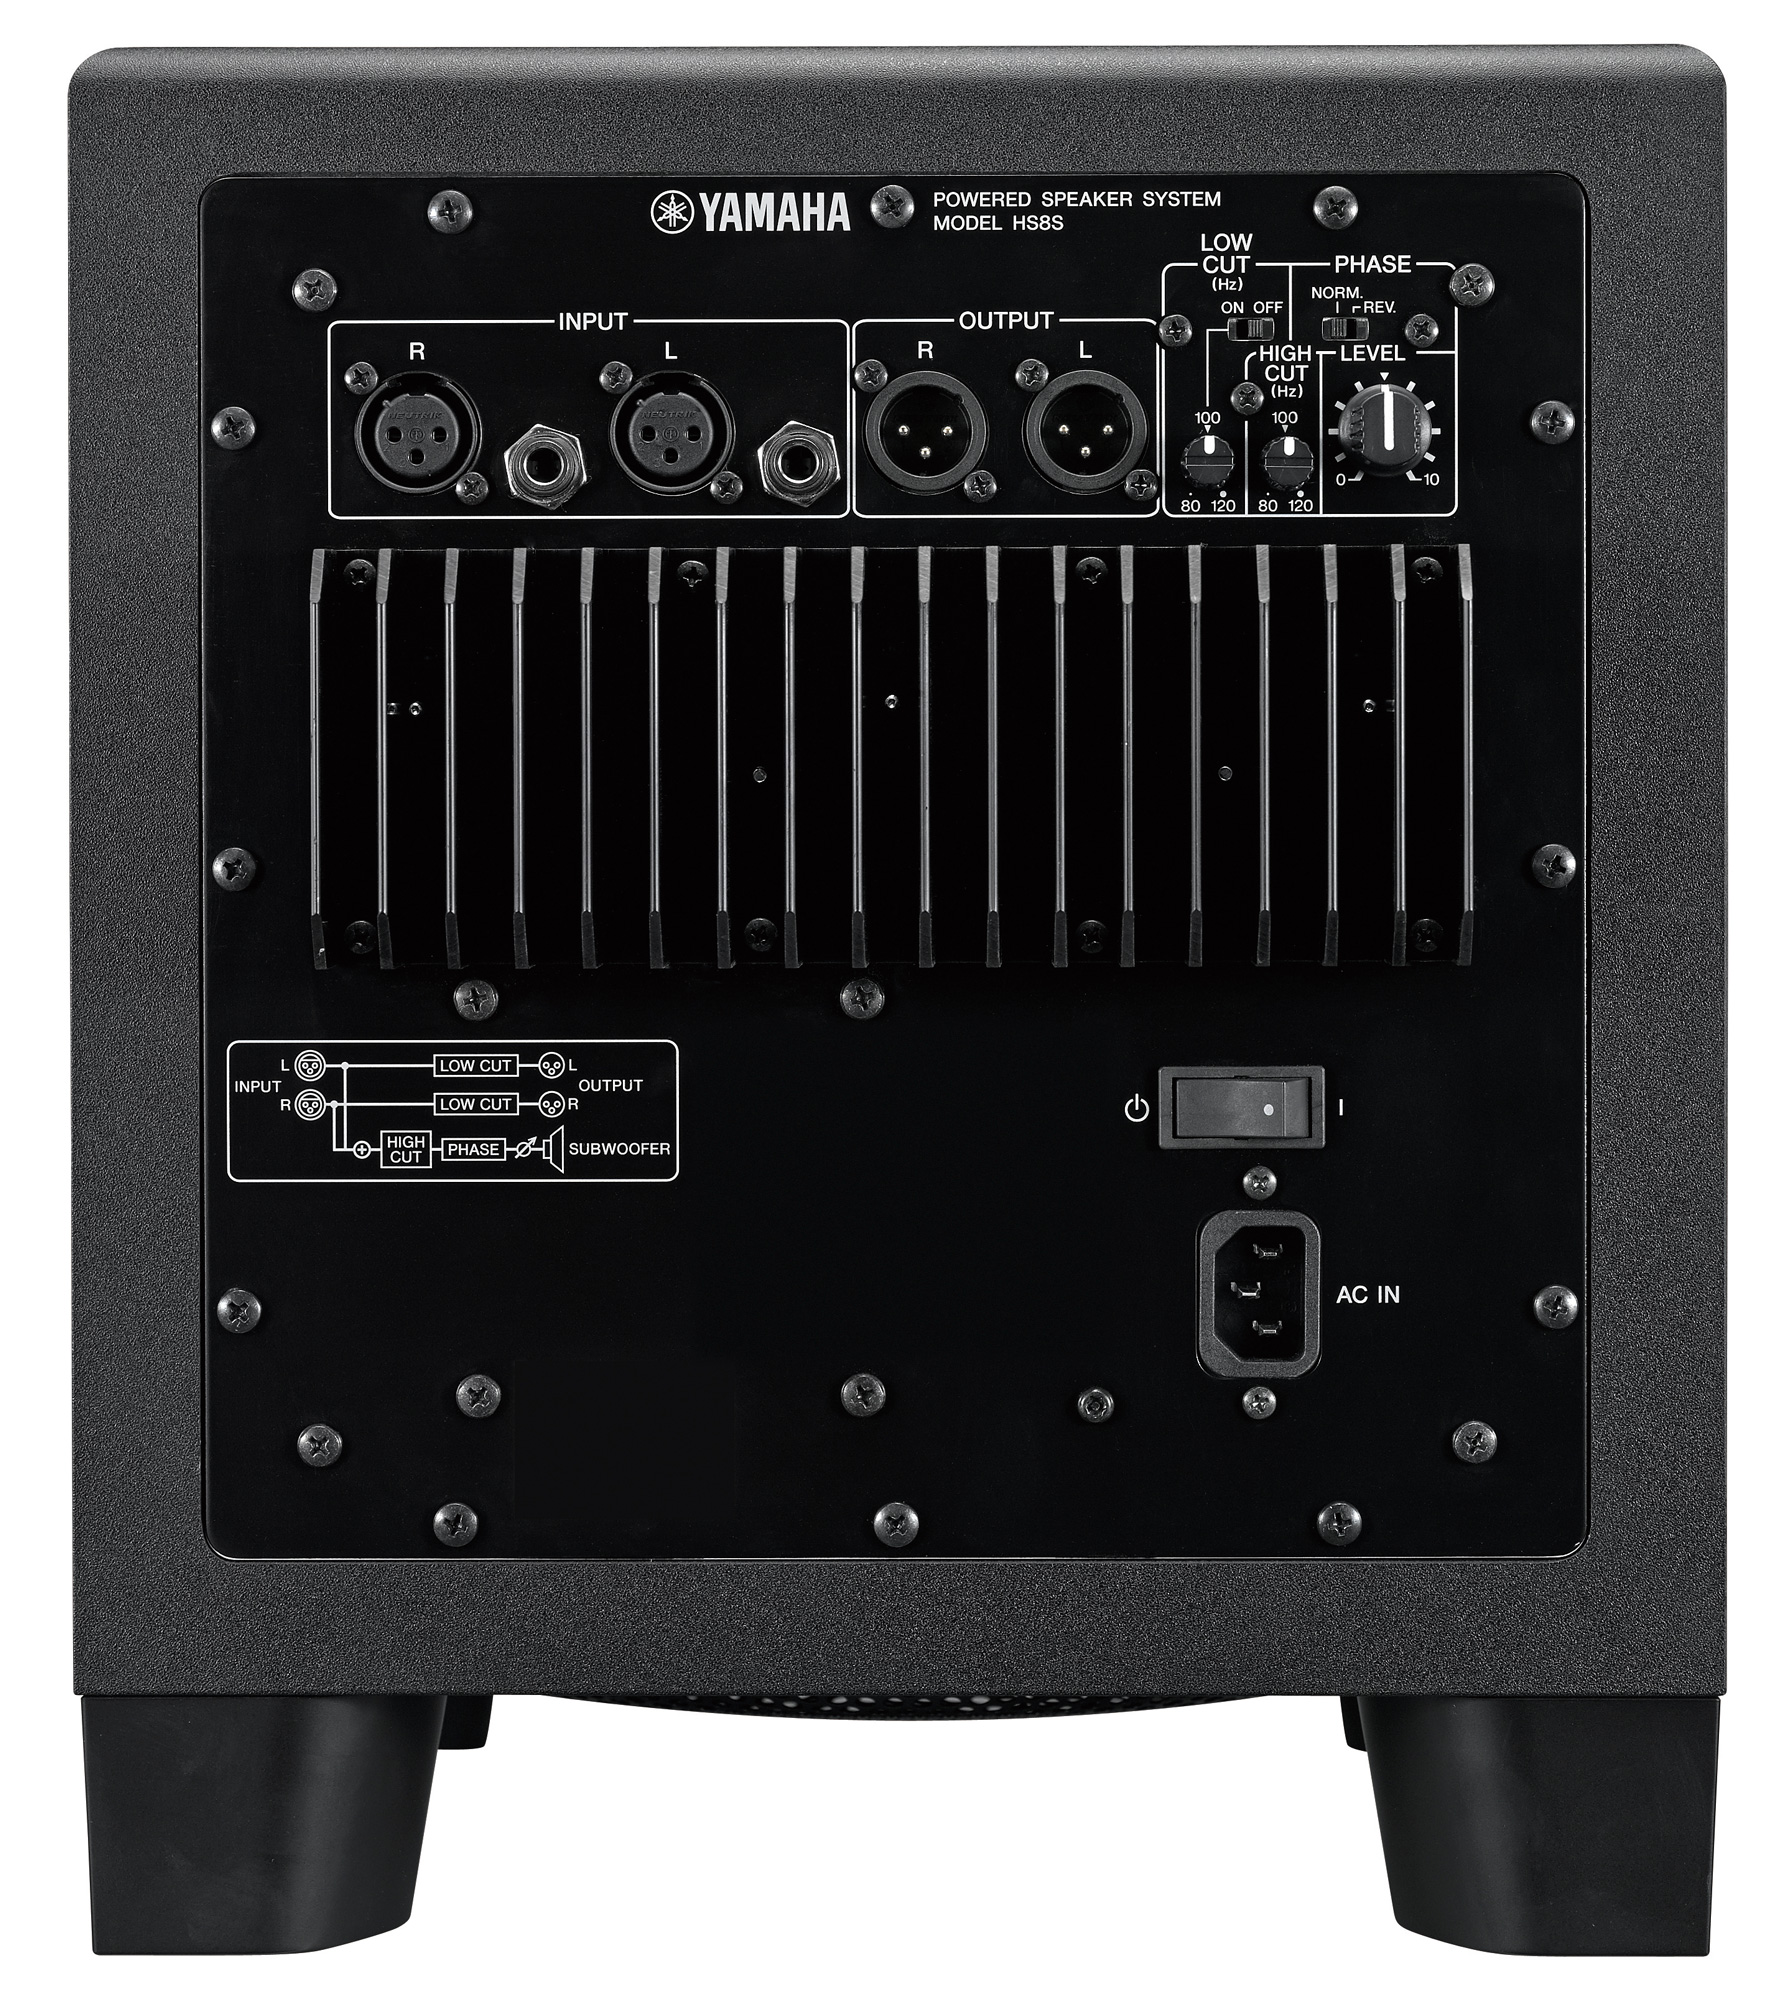 Image of the rear of the Yamaha HS8s powered subwoofer.